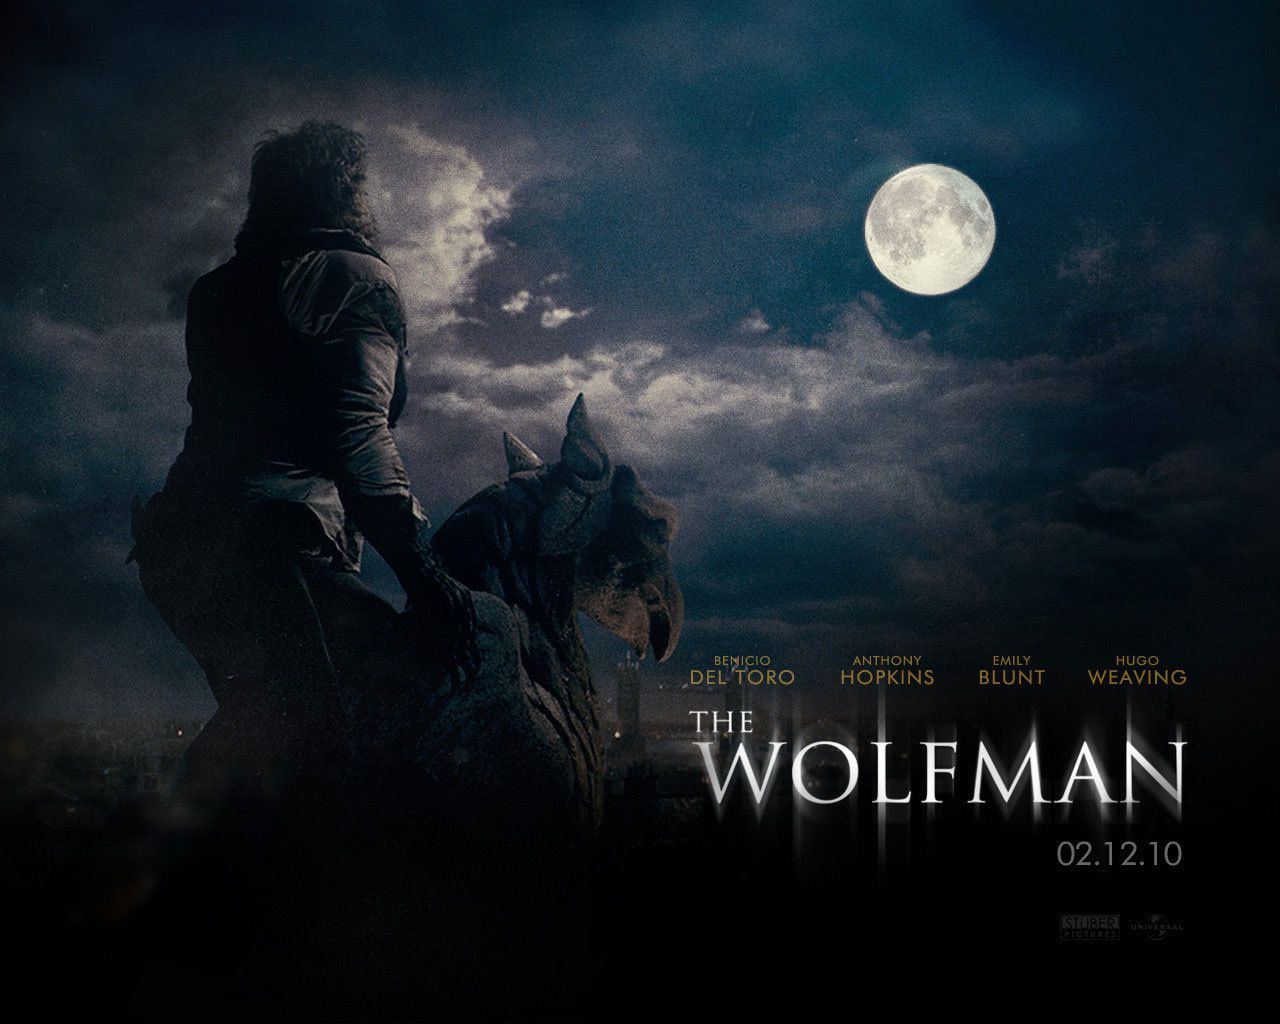 the wolfman dreamick movies